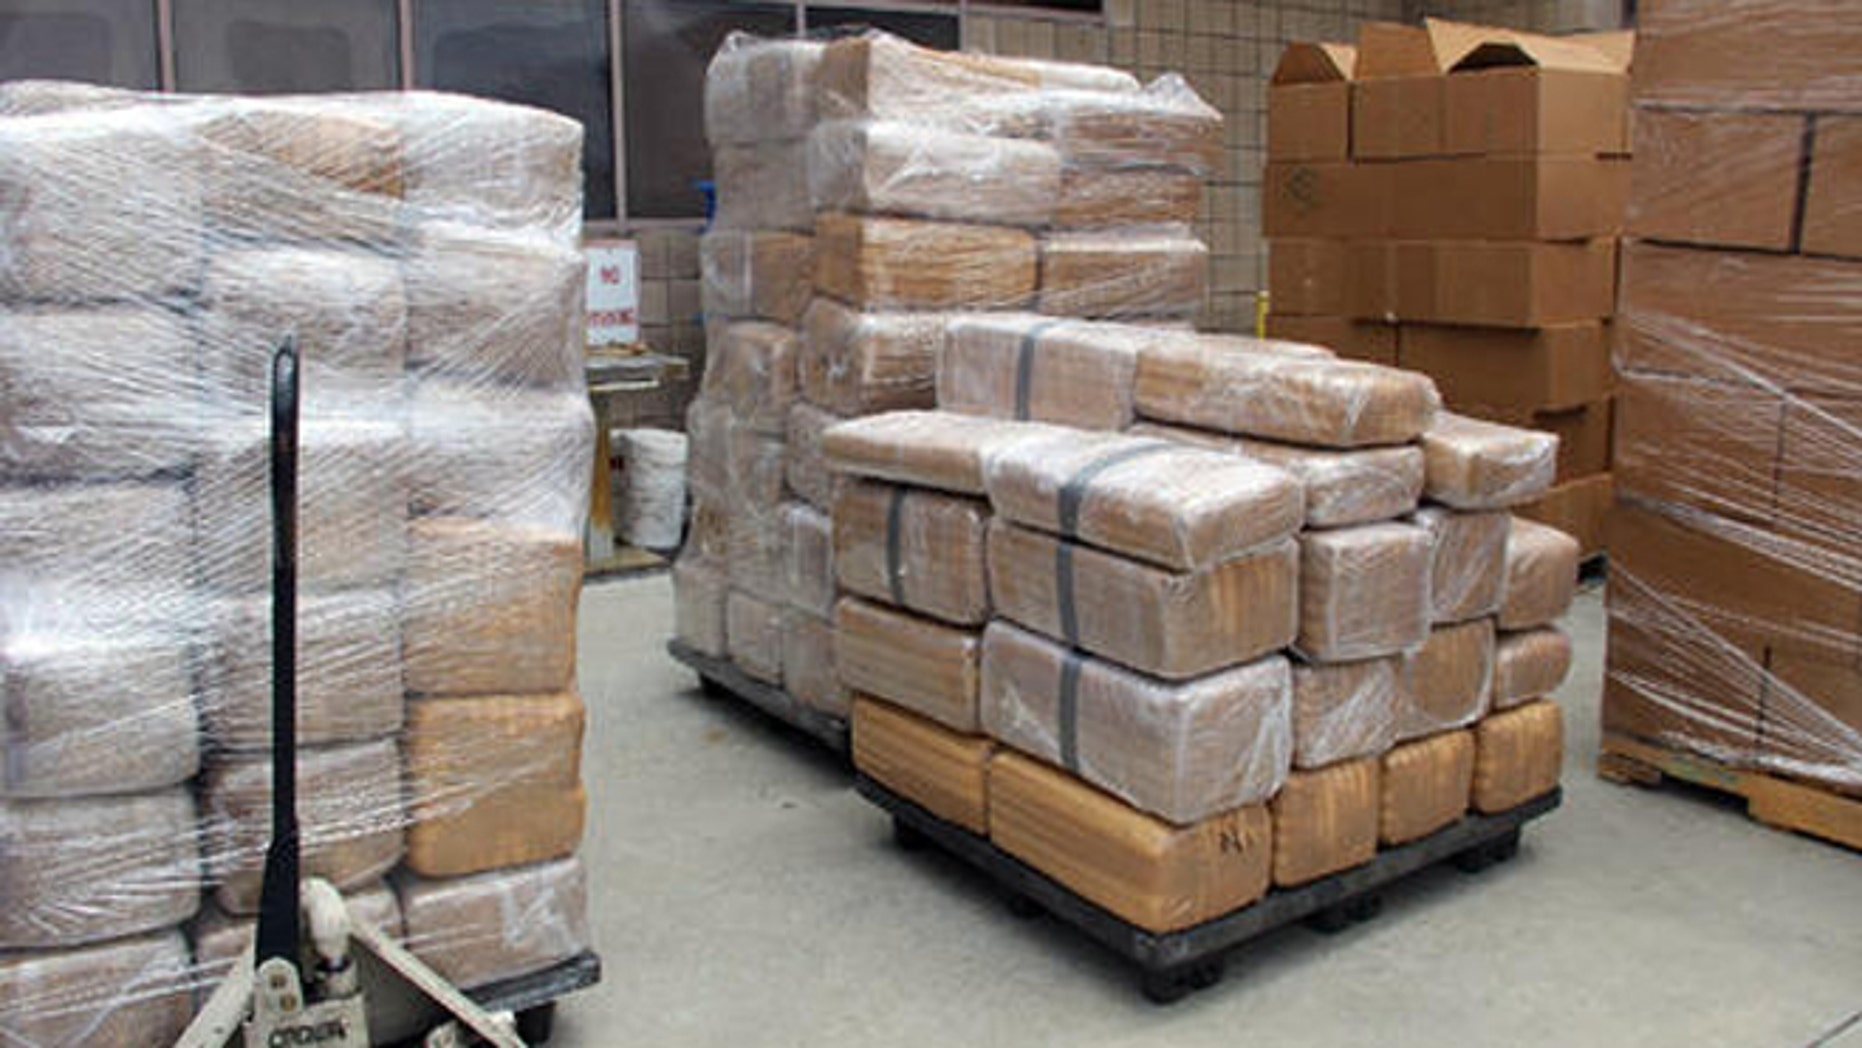 The feds seized seven tons of marijuana at the Otay Mesa border crossing cargo facility in San Diego Thursday. (U.S. Customs and Border Protection via AP)